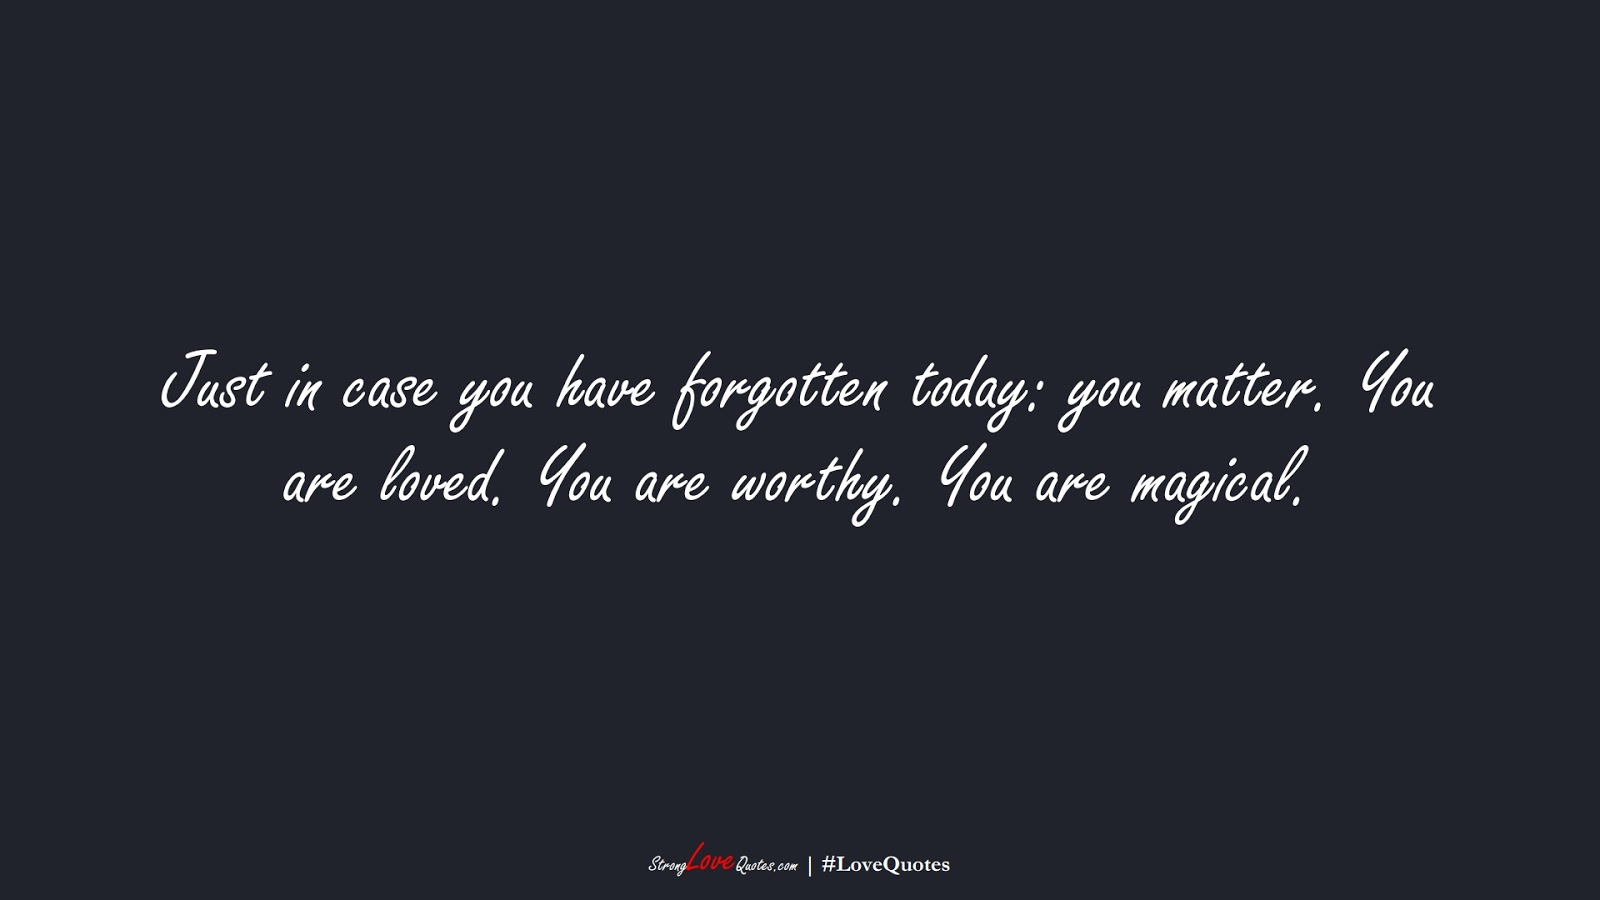 Just in case you have forgotten today: you matter. You are loved. You are worthy. You are magical.FALSE